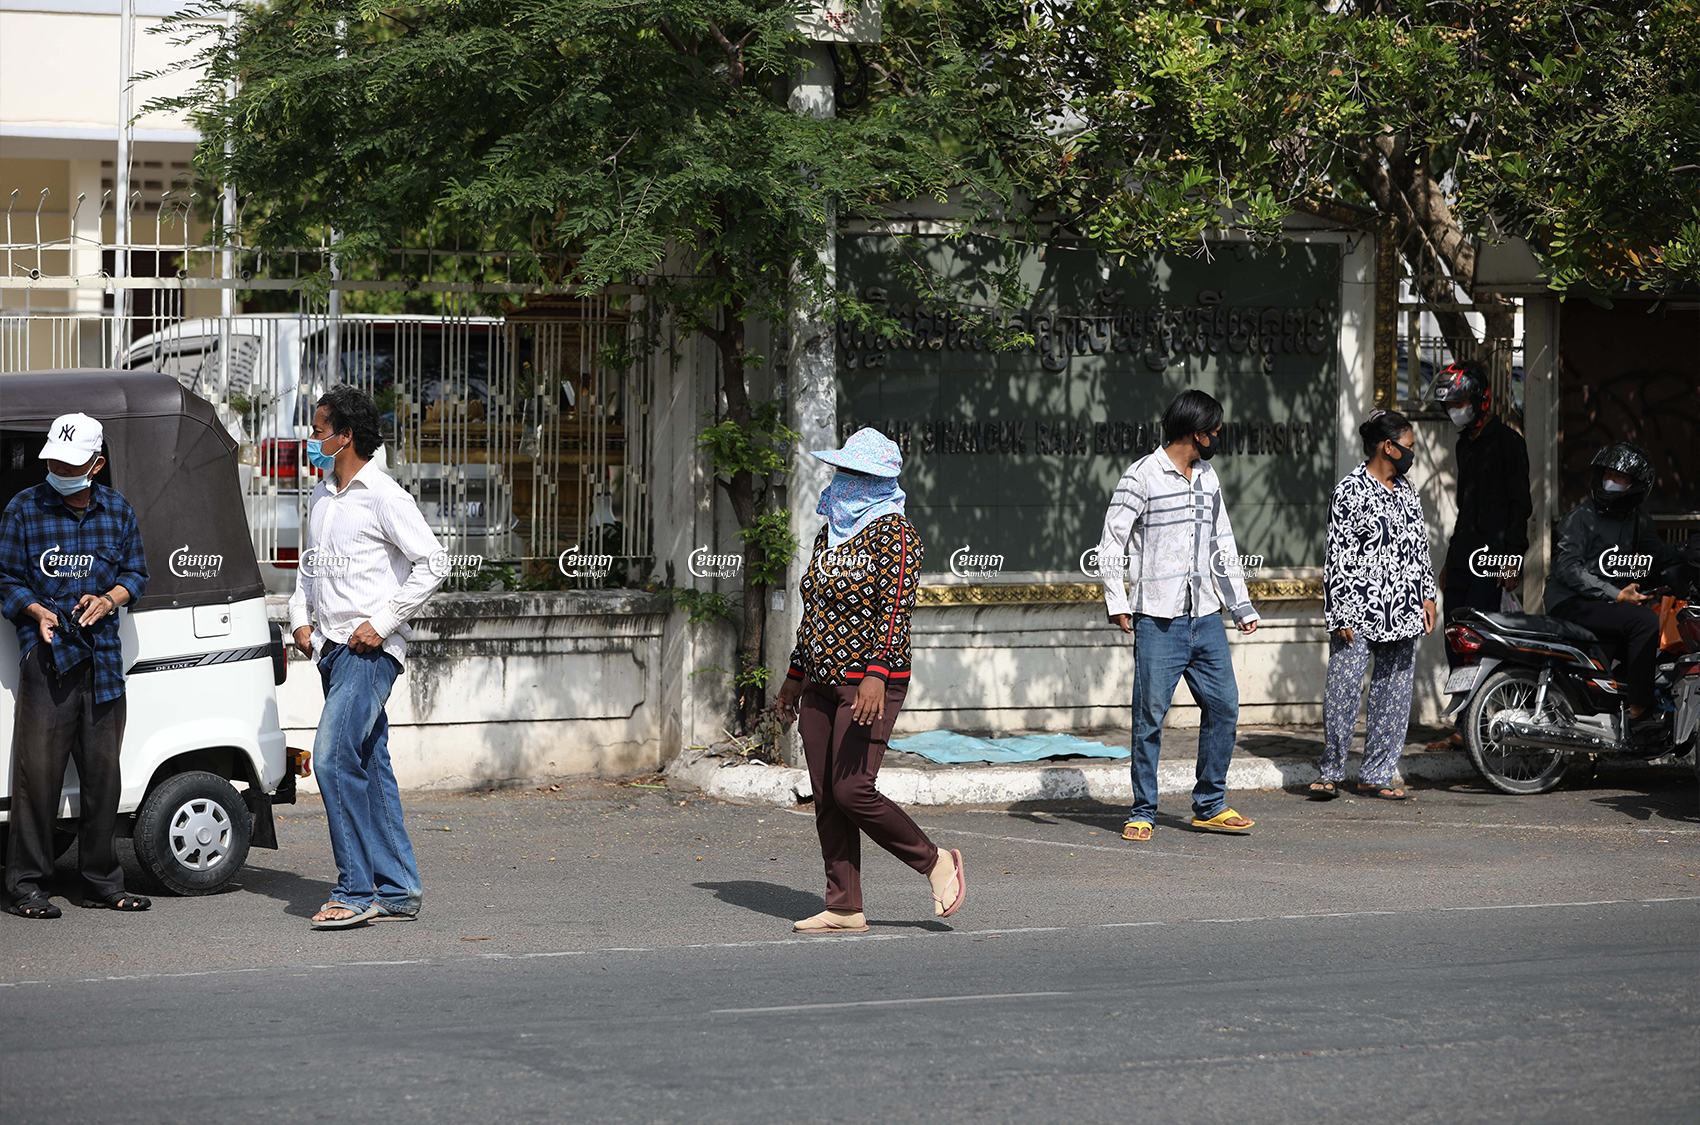 Kandal province villagers leave the Ministry of Justice after protesting over arrests in their land dispute, July 5, 2021.CamboJA/ Pring Samrang